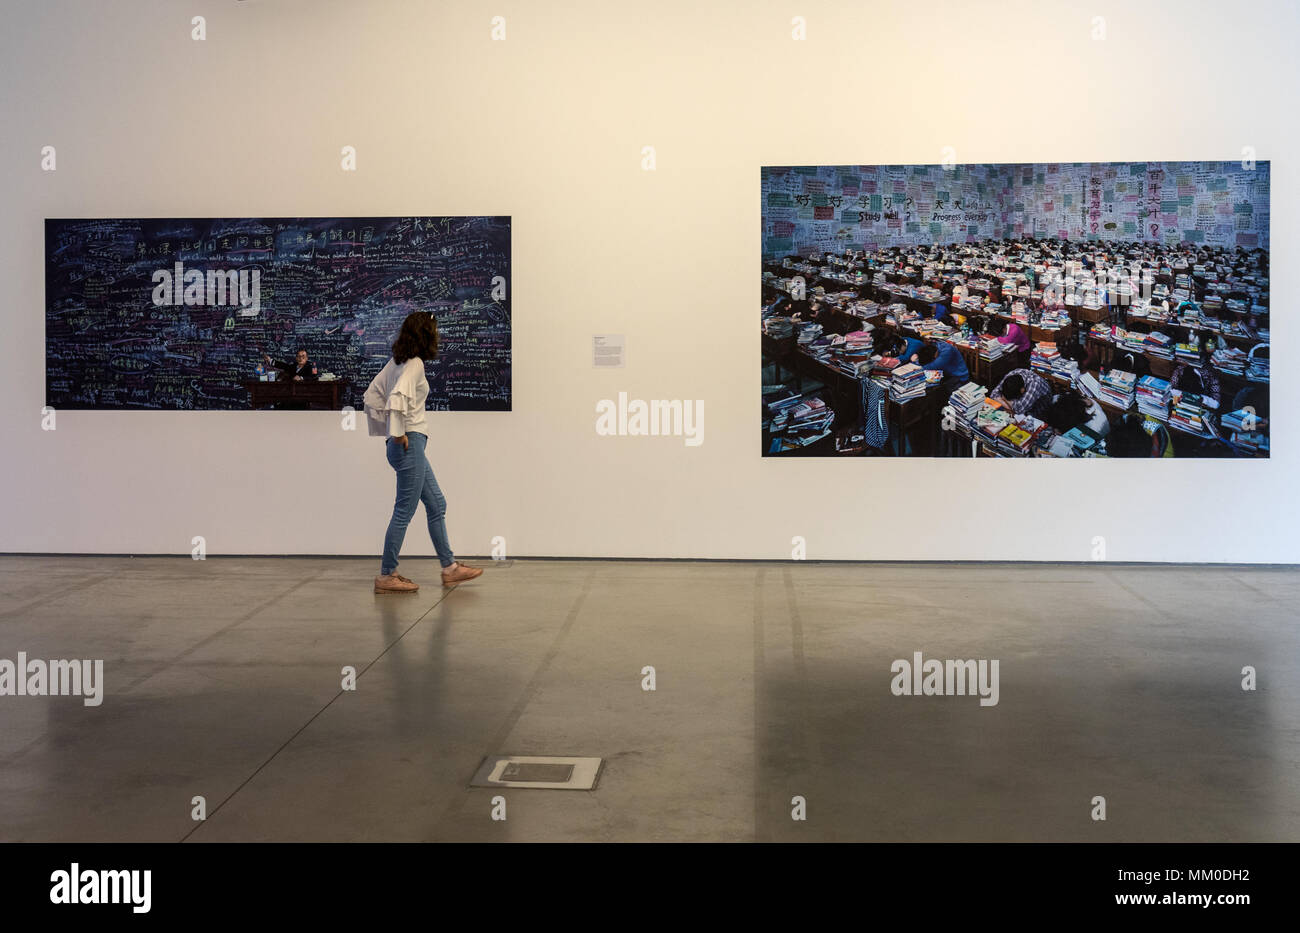 Cracow, Poland - May 8, 2018: Exibition Motherland in Art at Mocak in Krakow. Wang Quinsong - Follow me Credit: Wieslaw Jarek/Alamy Live News Stock Photo